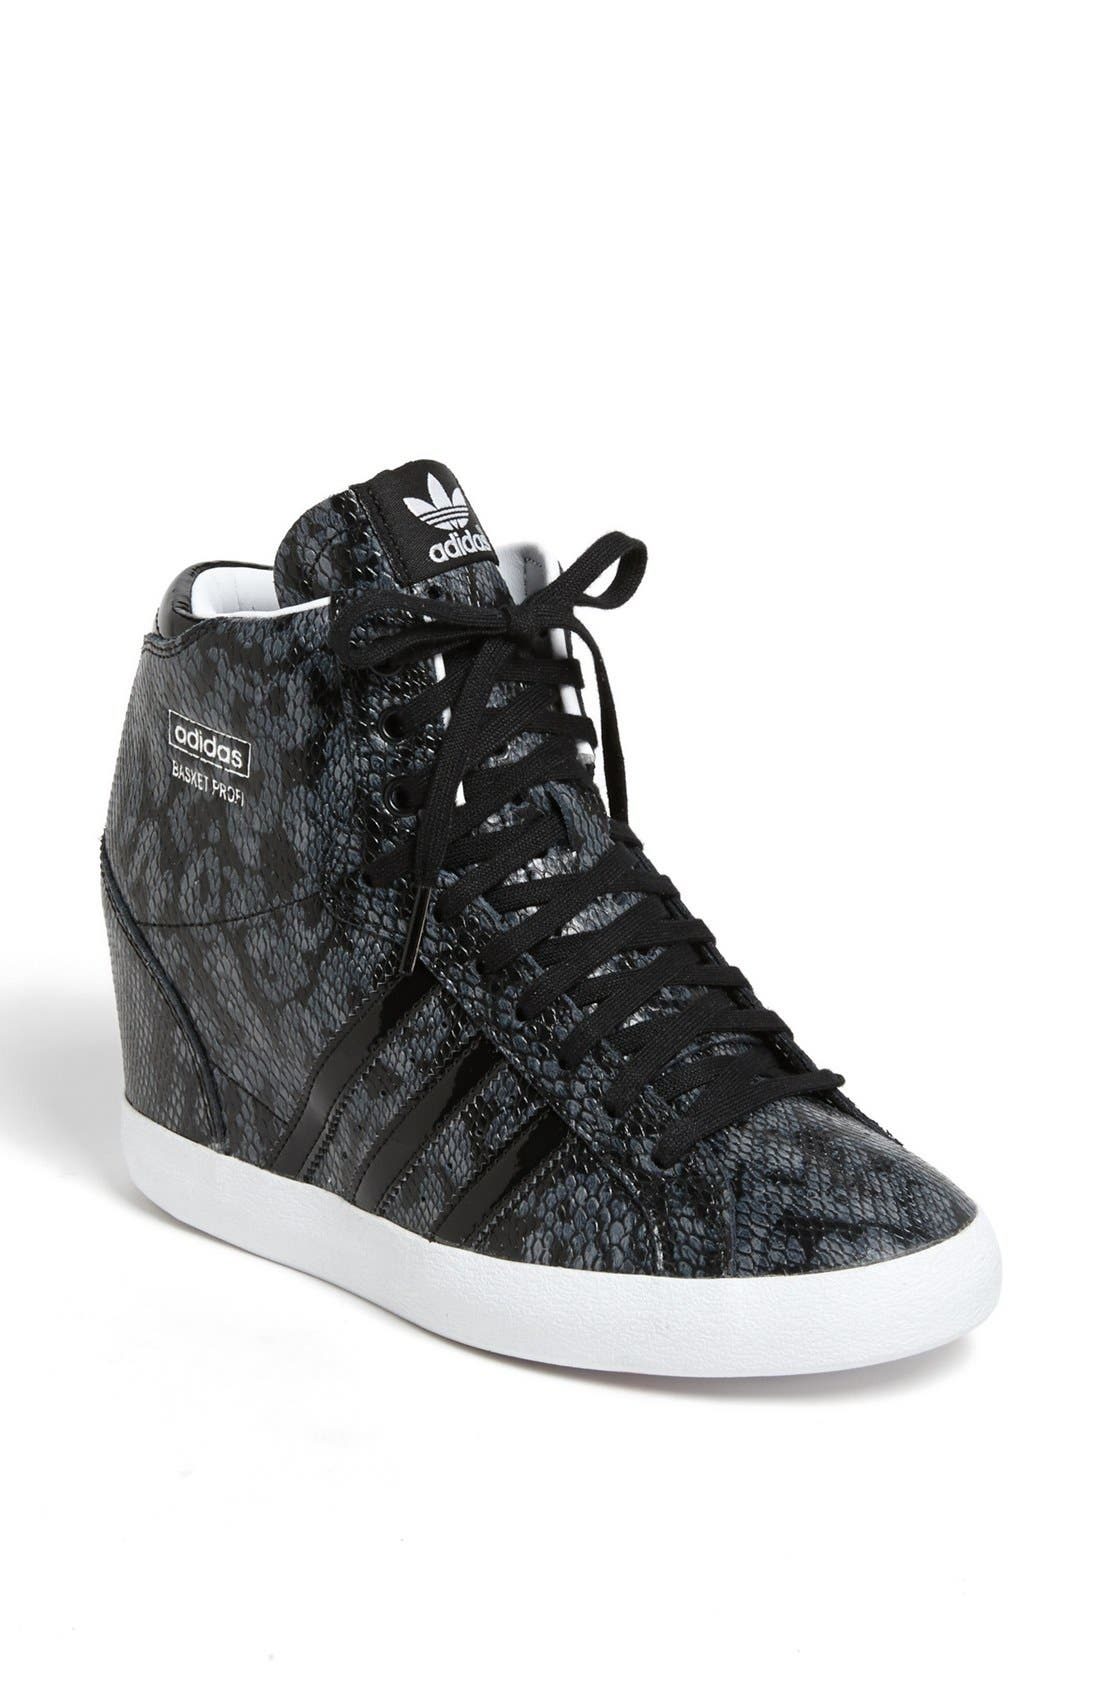 Alternate Image 1 Selected - adidas 'Basket Profi' Hidden Wedge Sneaker (Women)